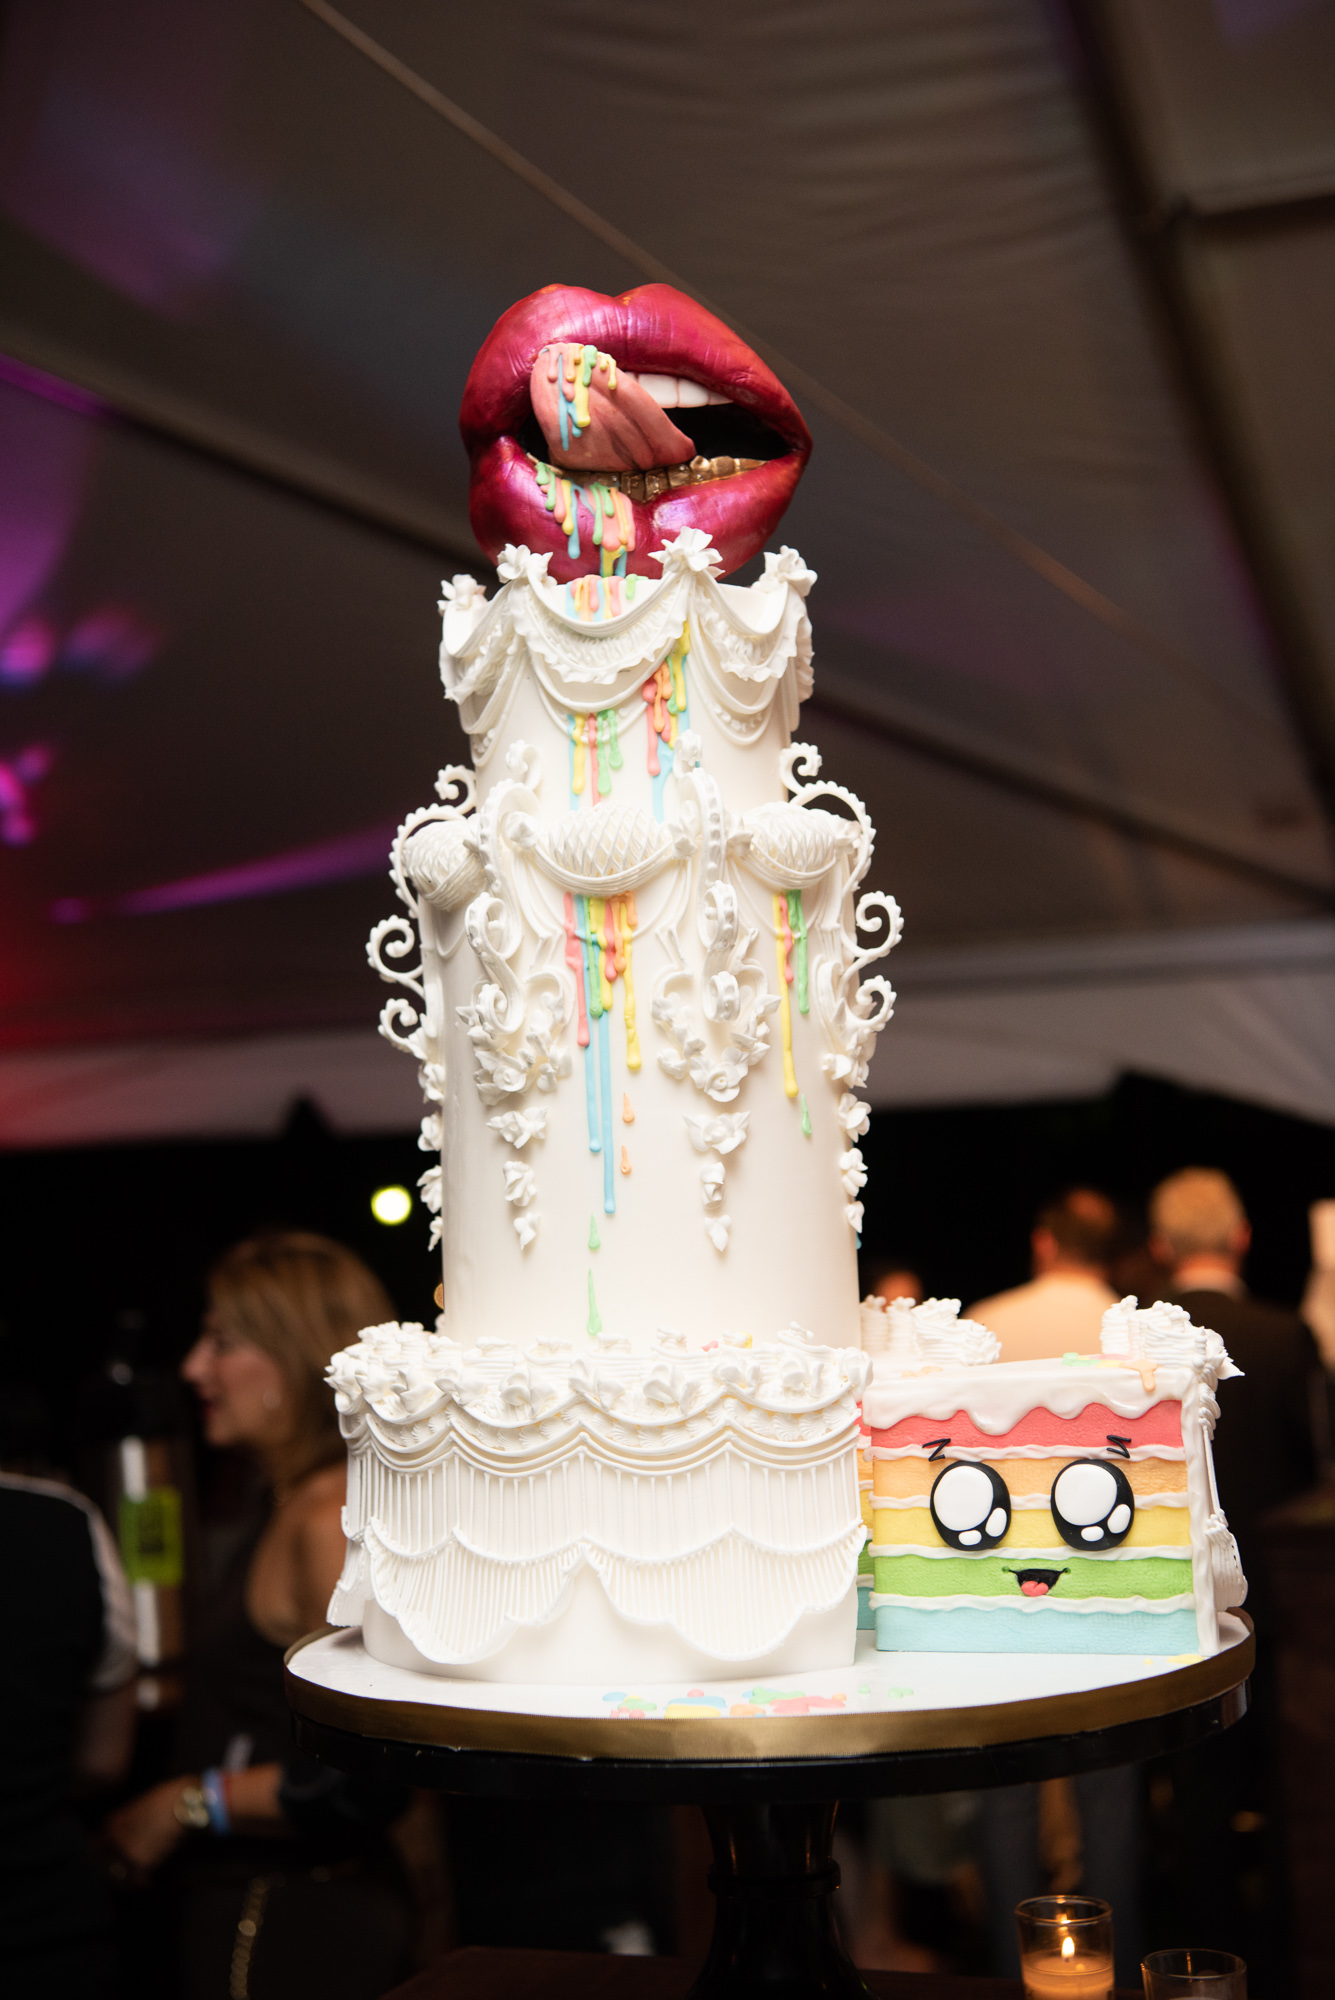 We were obsessed with the stunning wedding cakes created for the event, especially this cheeky number from Fluffy Thoughts Cakes. (Image:{ }Jeff Martin for Human Rights Campaign)